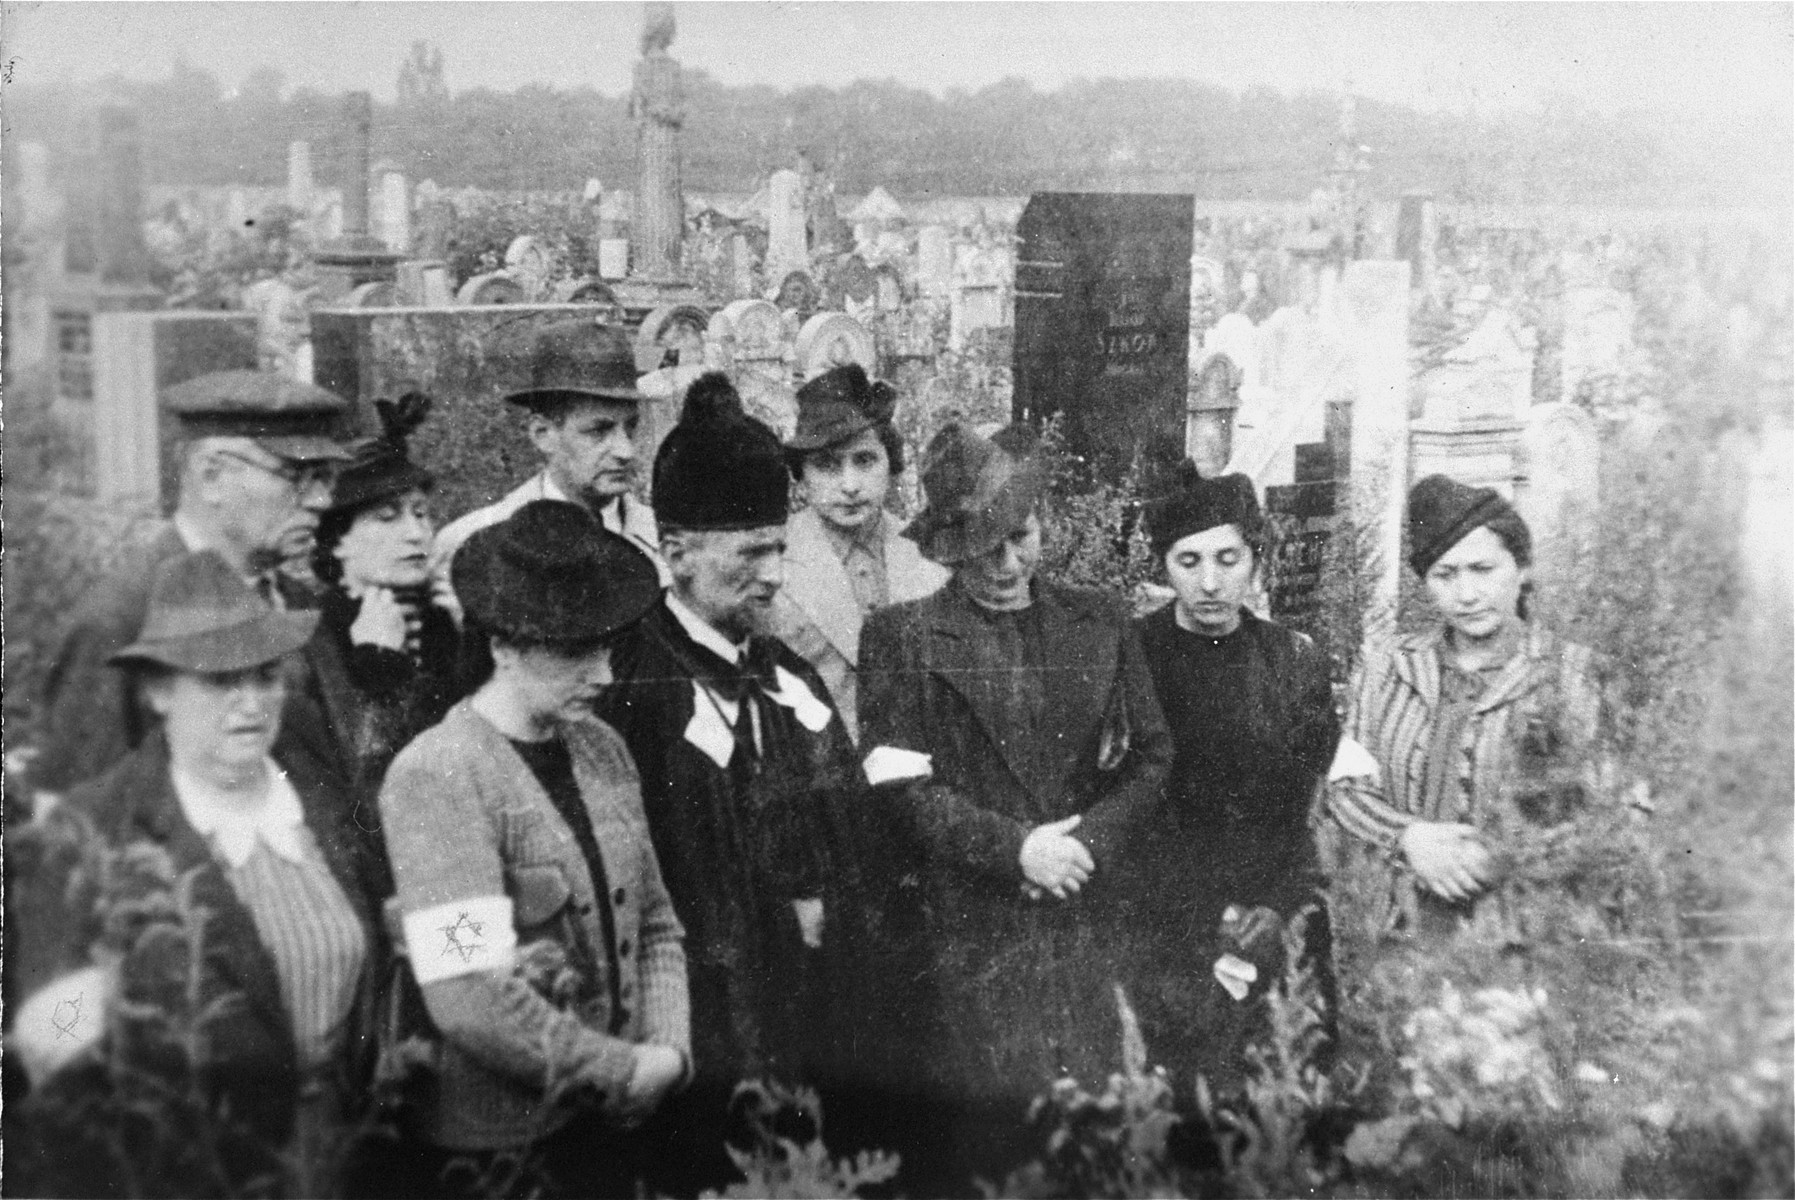 Ghetto residents attend a memorial service for a relative at the Jewish cemetery in Warsaw.  Pictured are Hela, Hanka, Fela and Edzia Berkowicz.